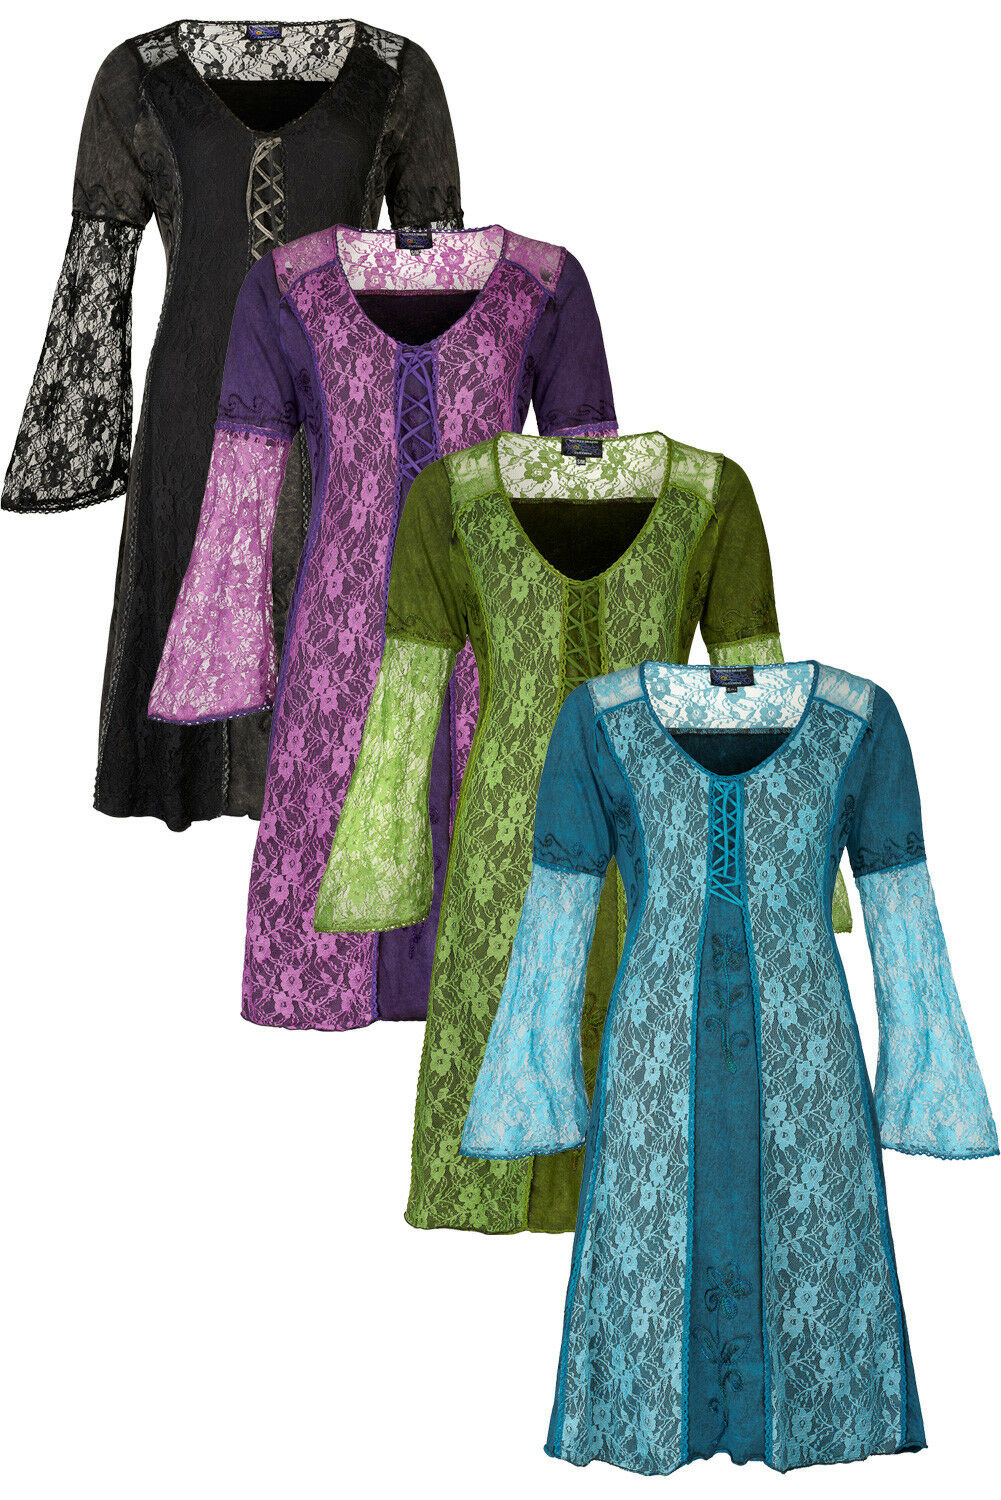 New Lace Fairy Dress Bell Sleeves Pagan Style Clothes up to PLUS SIZE